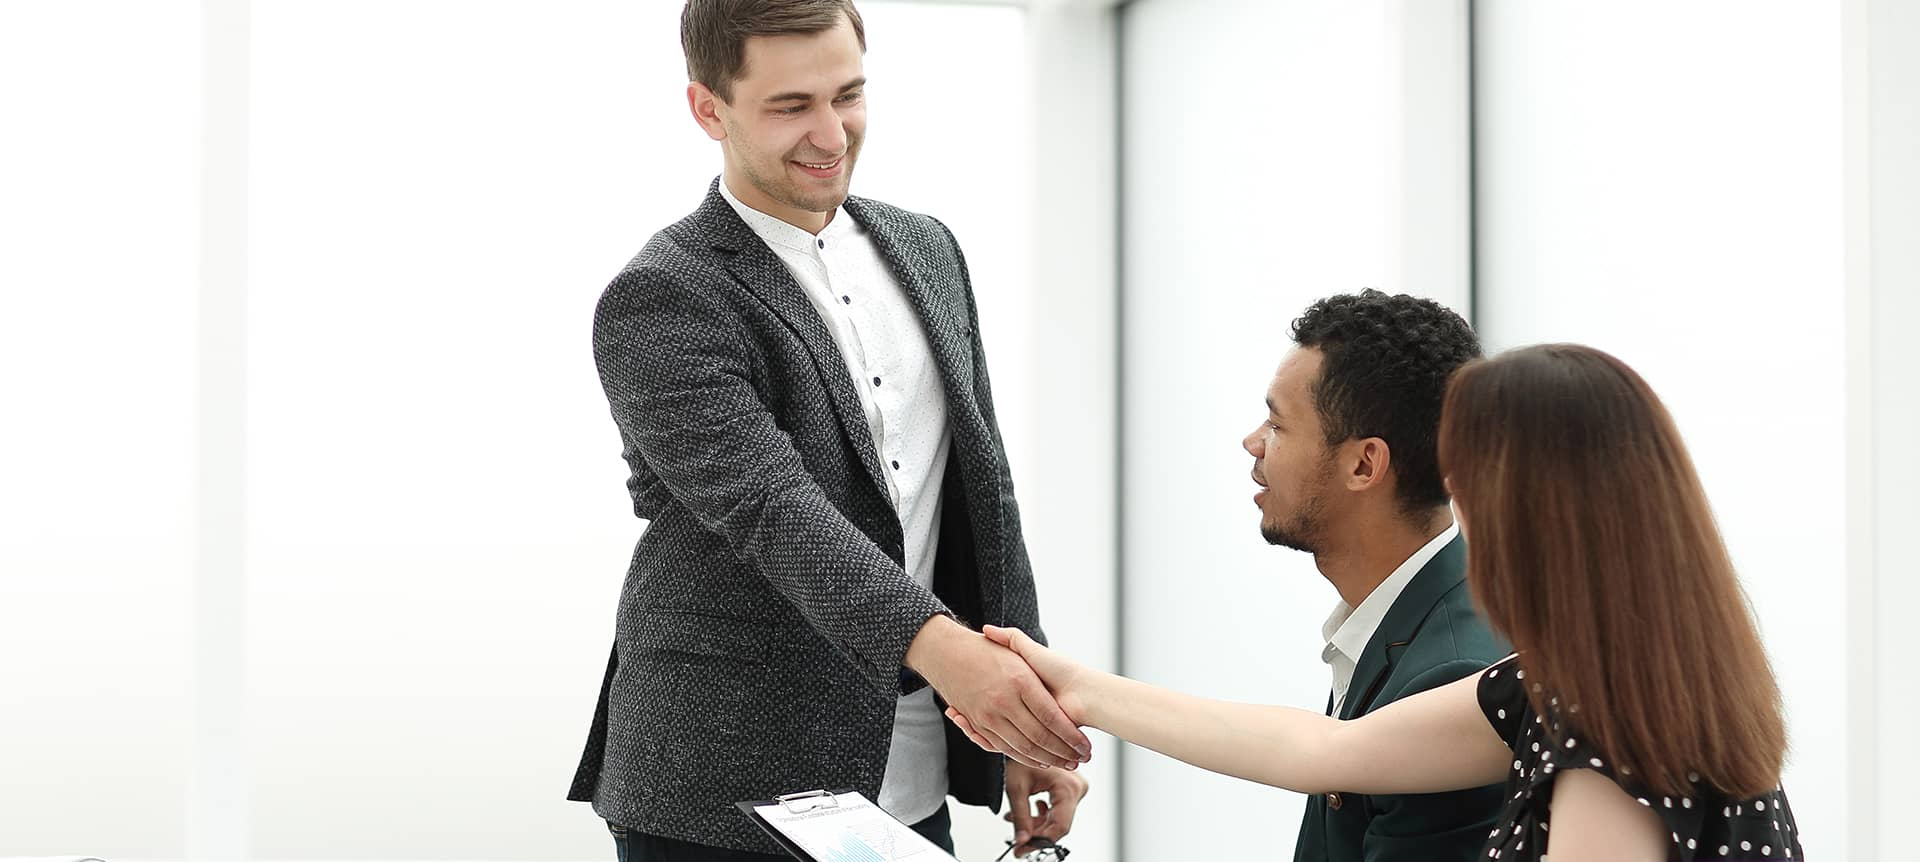 An applicant and HR professional shaking hands.